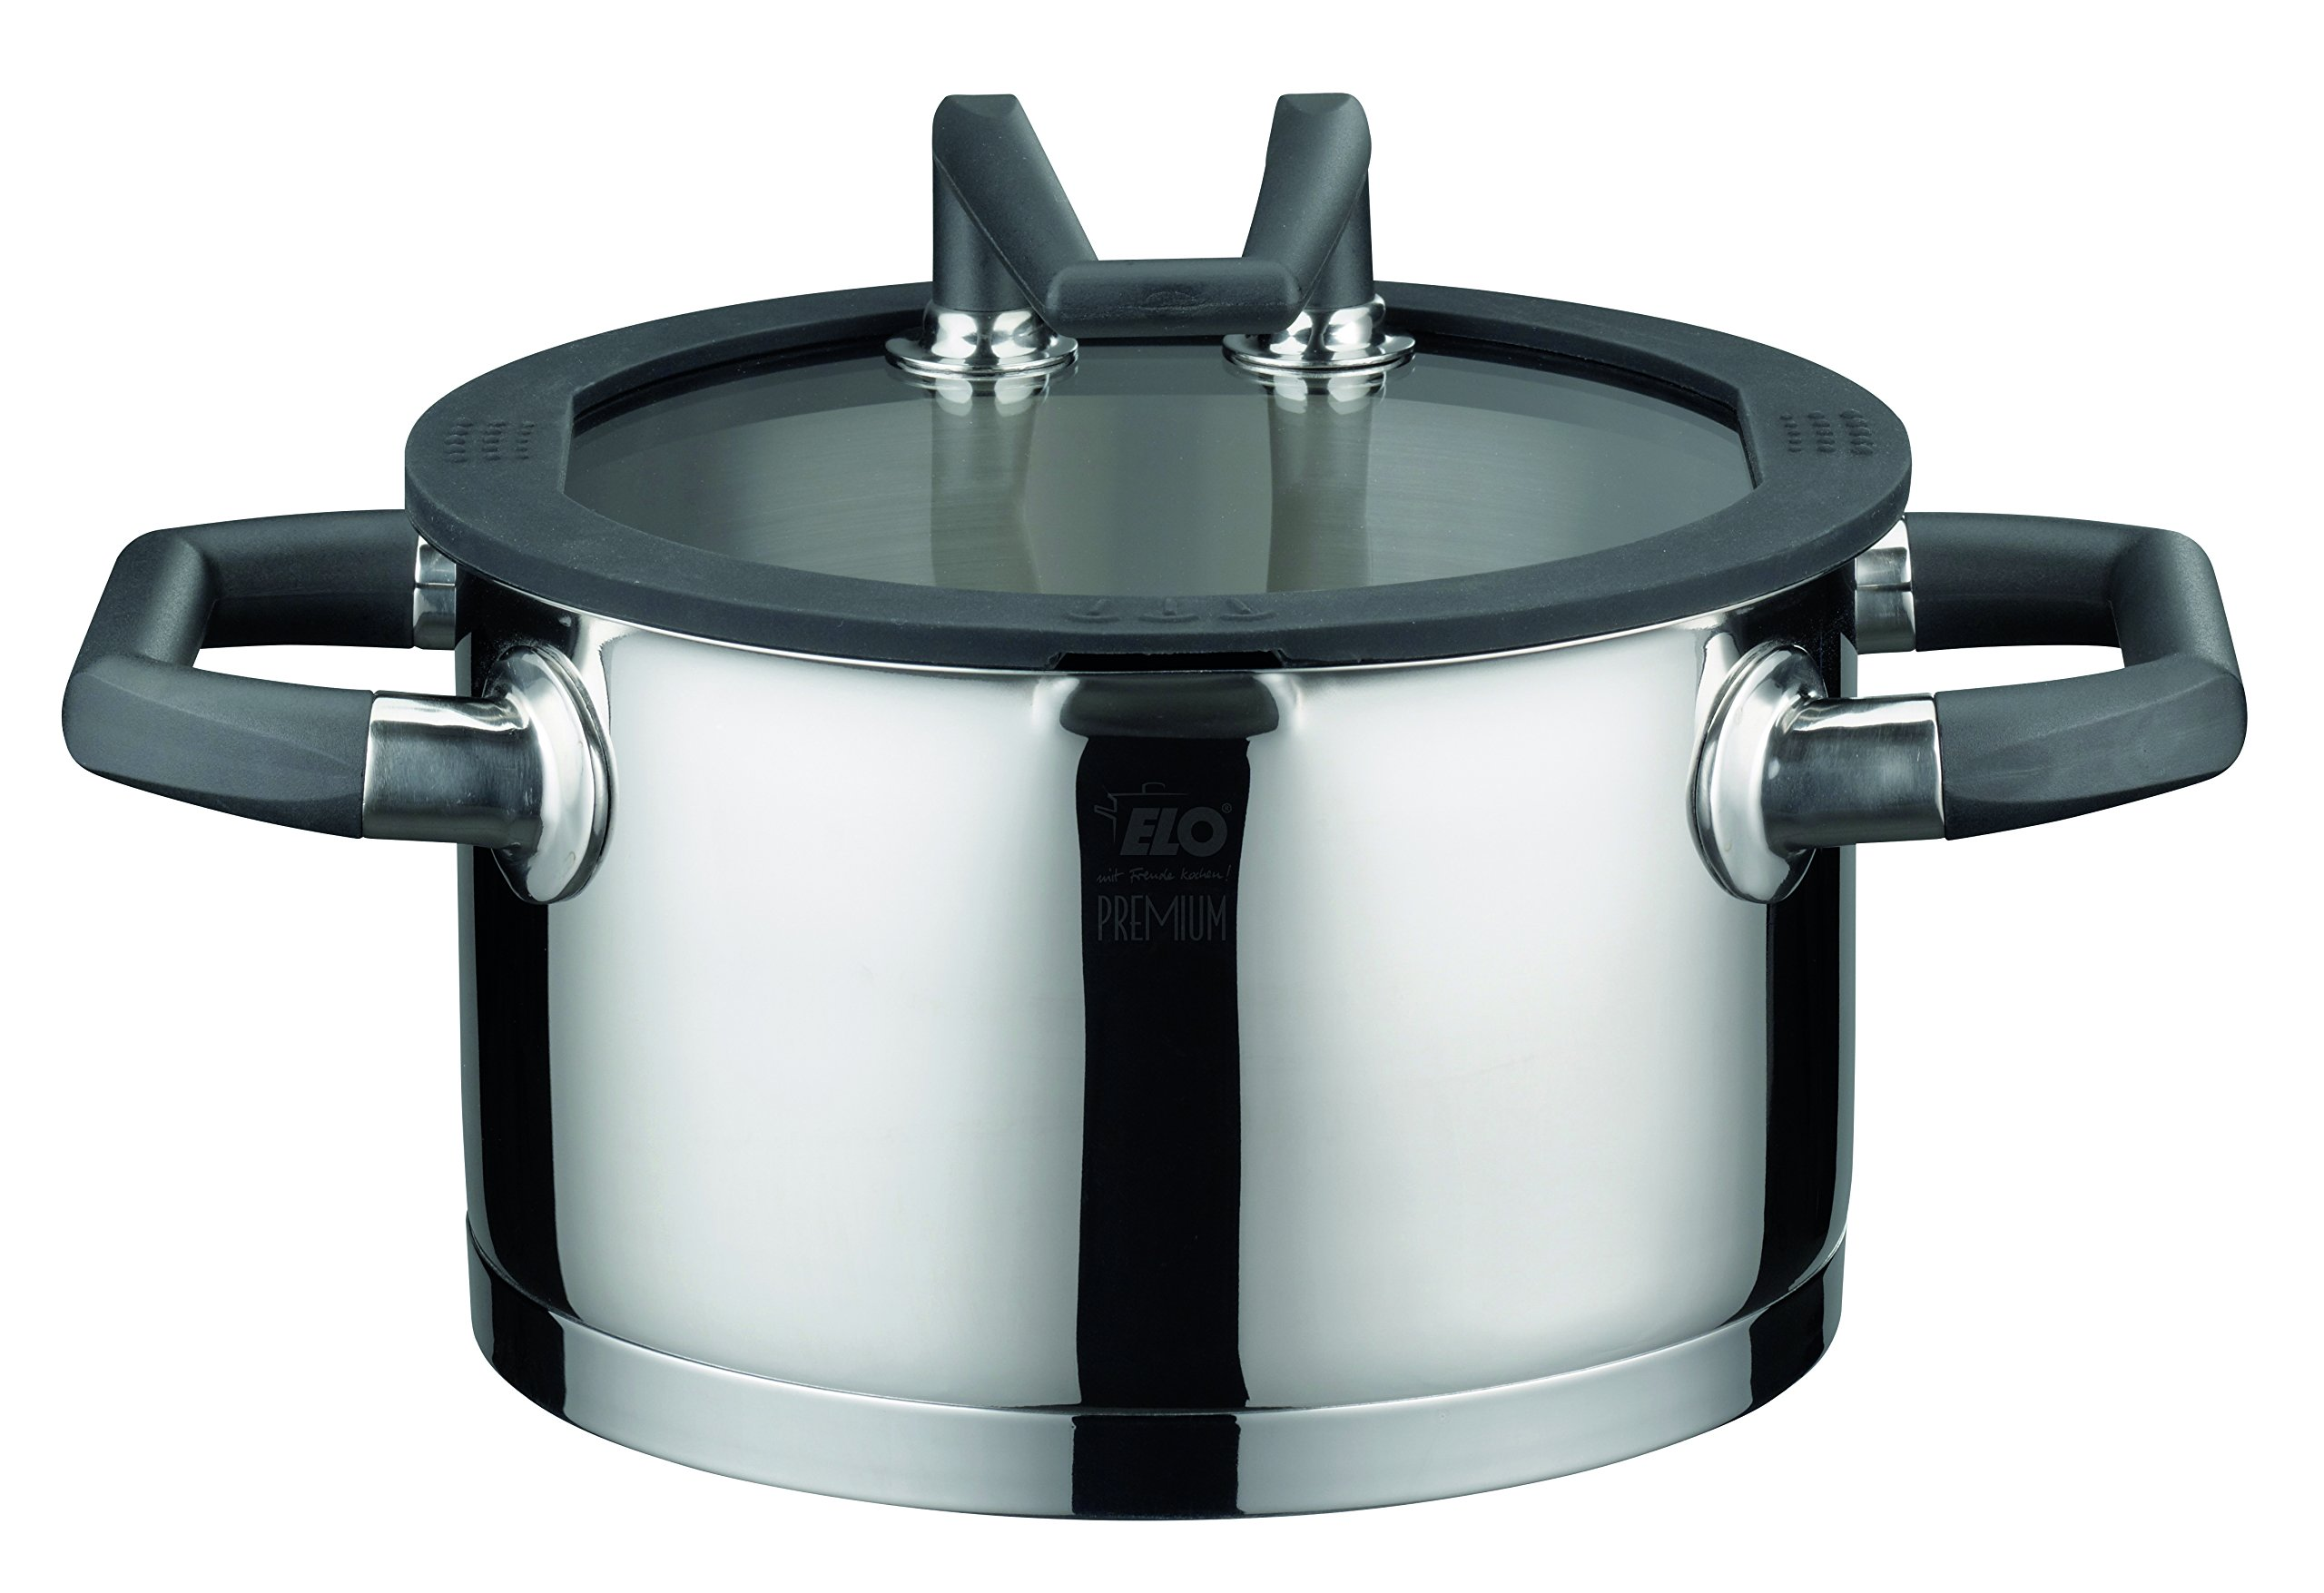 ELO 30220 Black Pearl Premium Stainless Steel Sauce Pot with Glass Lid, 3-1/2-Quart by ELO Cookware